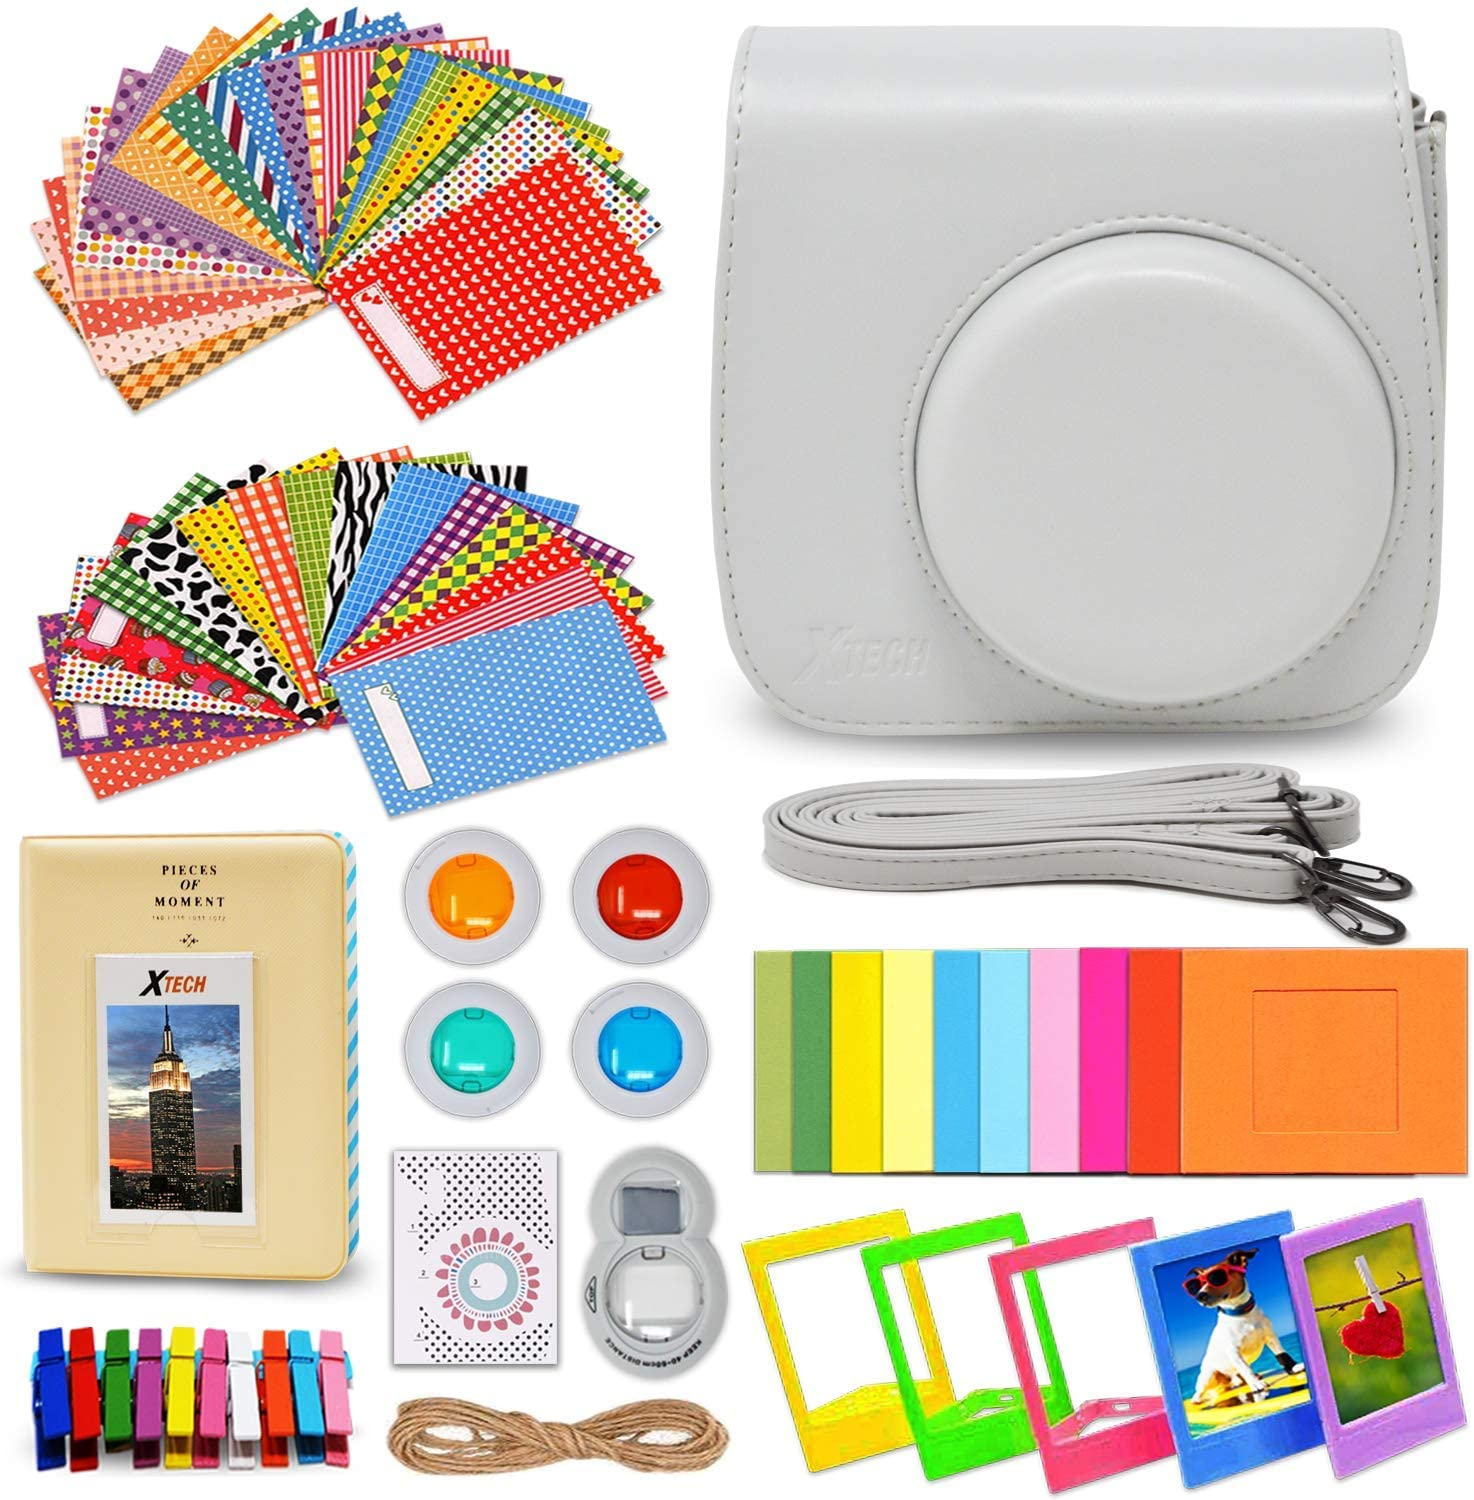 Xtech FujiFilm Instax Mini 9/8 Smoky WHITE Accessories Kit with Smoky white Camera Case with Strap + Photo Album + Colorful Frames + Sticker Frames + 4 Colorful Filters + Large Selfie Mirror + MORE